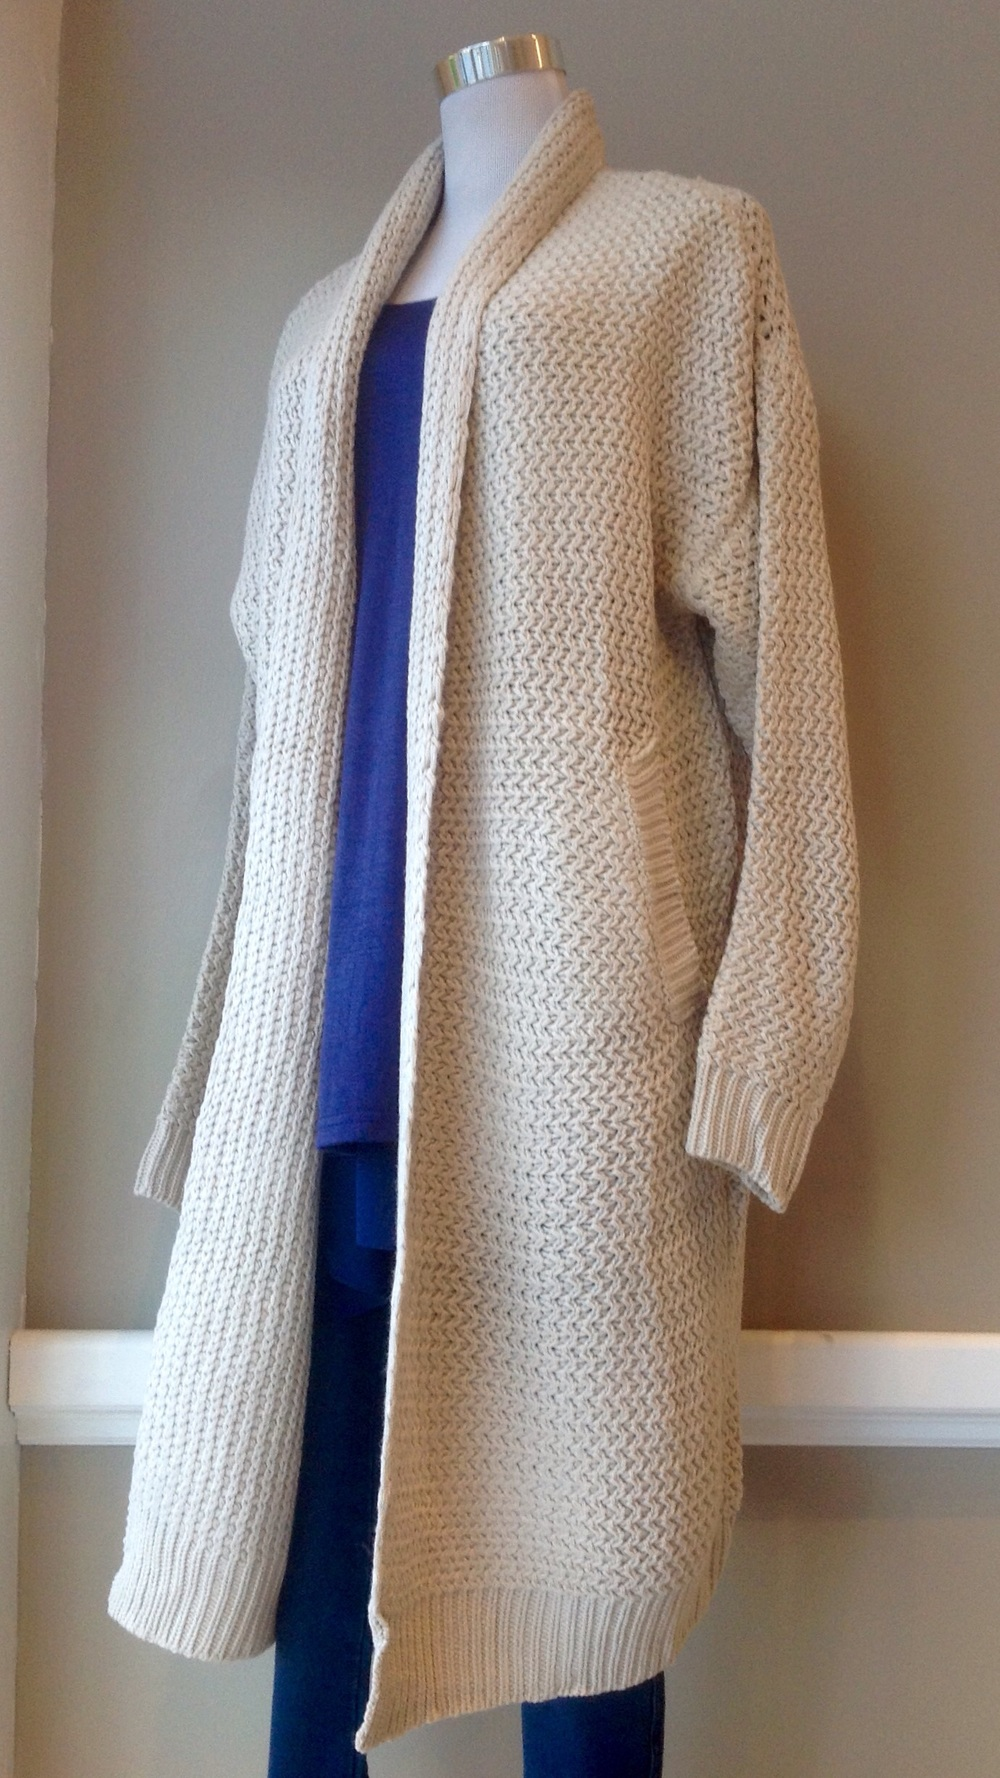 Double knit sweater coat in Oatmeal, $48